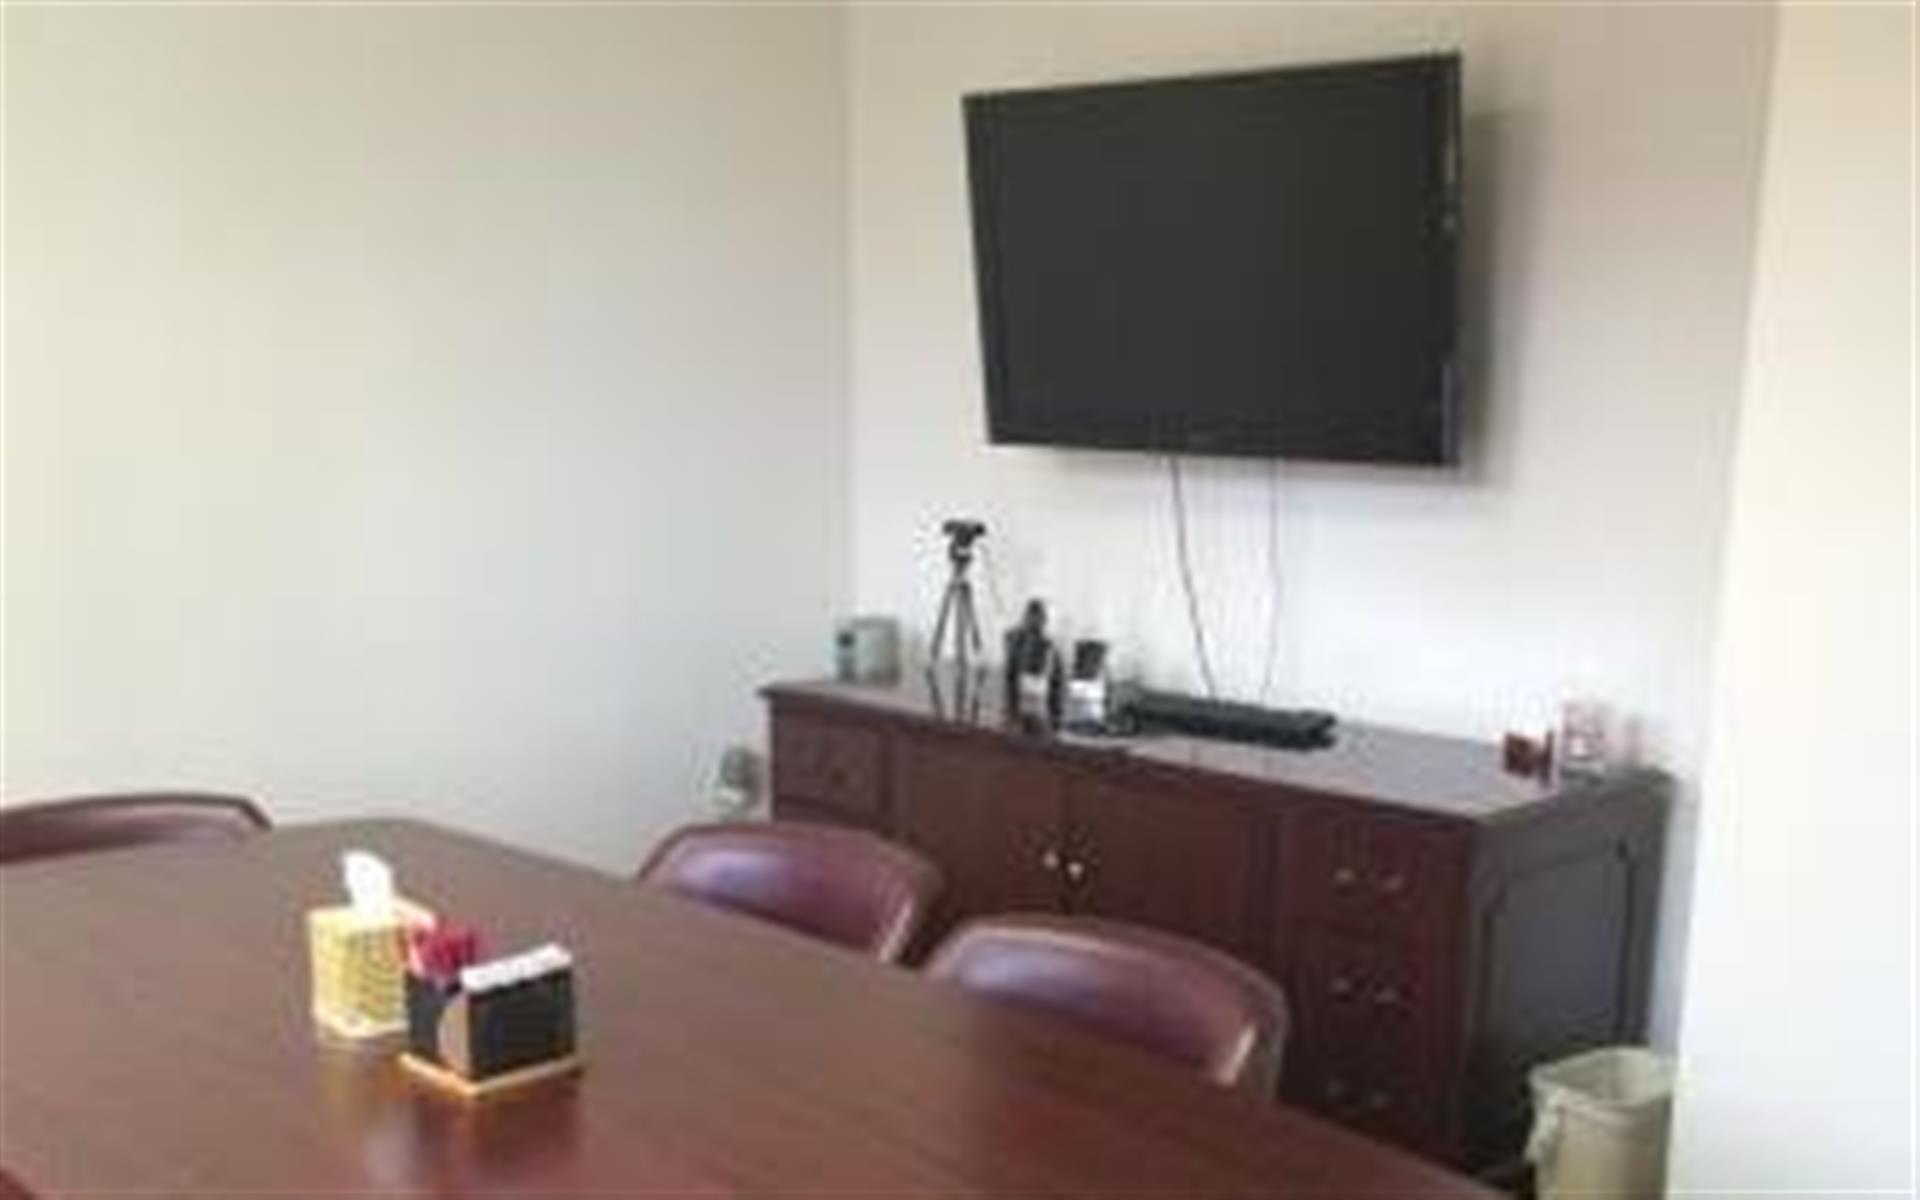 Summit City Reporting - Videoconference Room